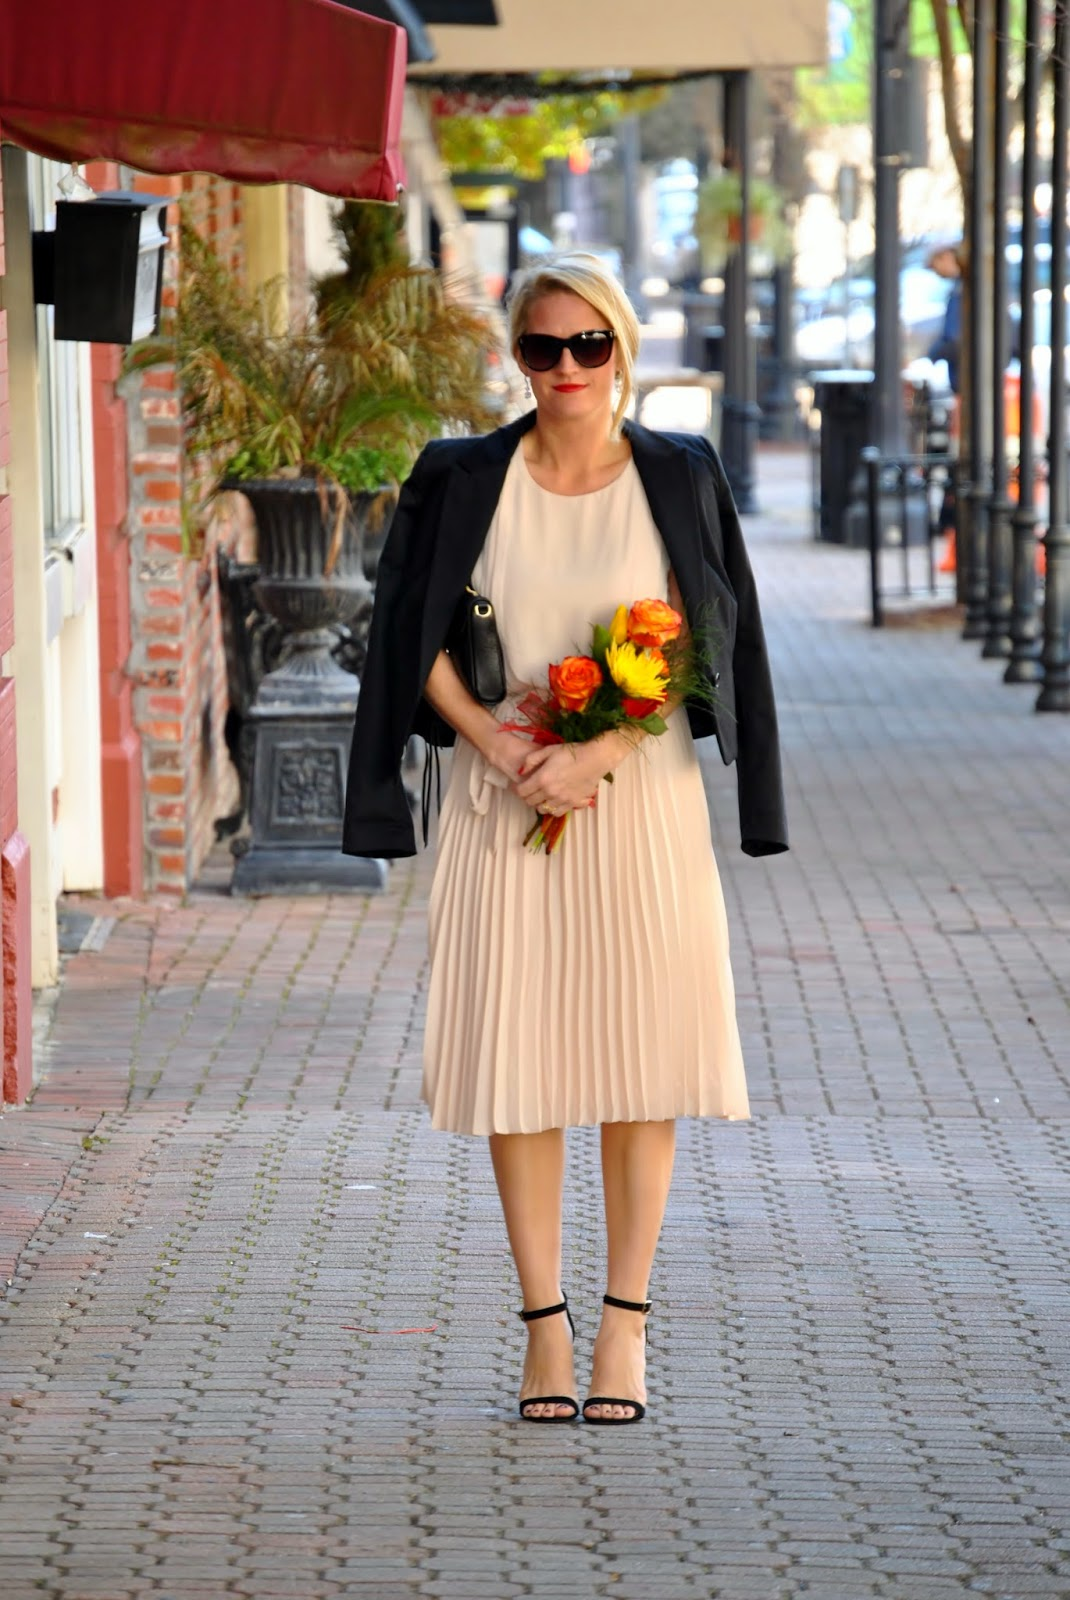 Rebecca Minkoff Mini Mac, Forever 21 Pleated Dress, Valentines Day Date Outfit~Sunshine and Sequins Blog